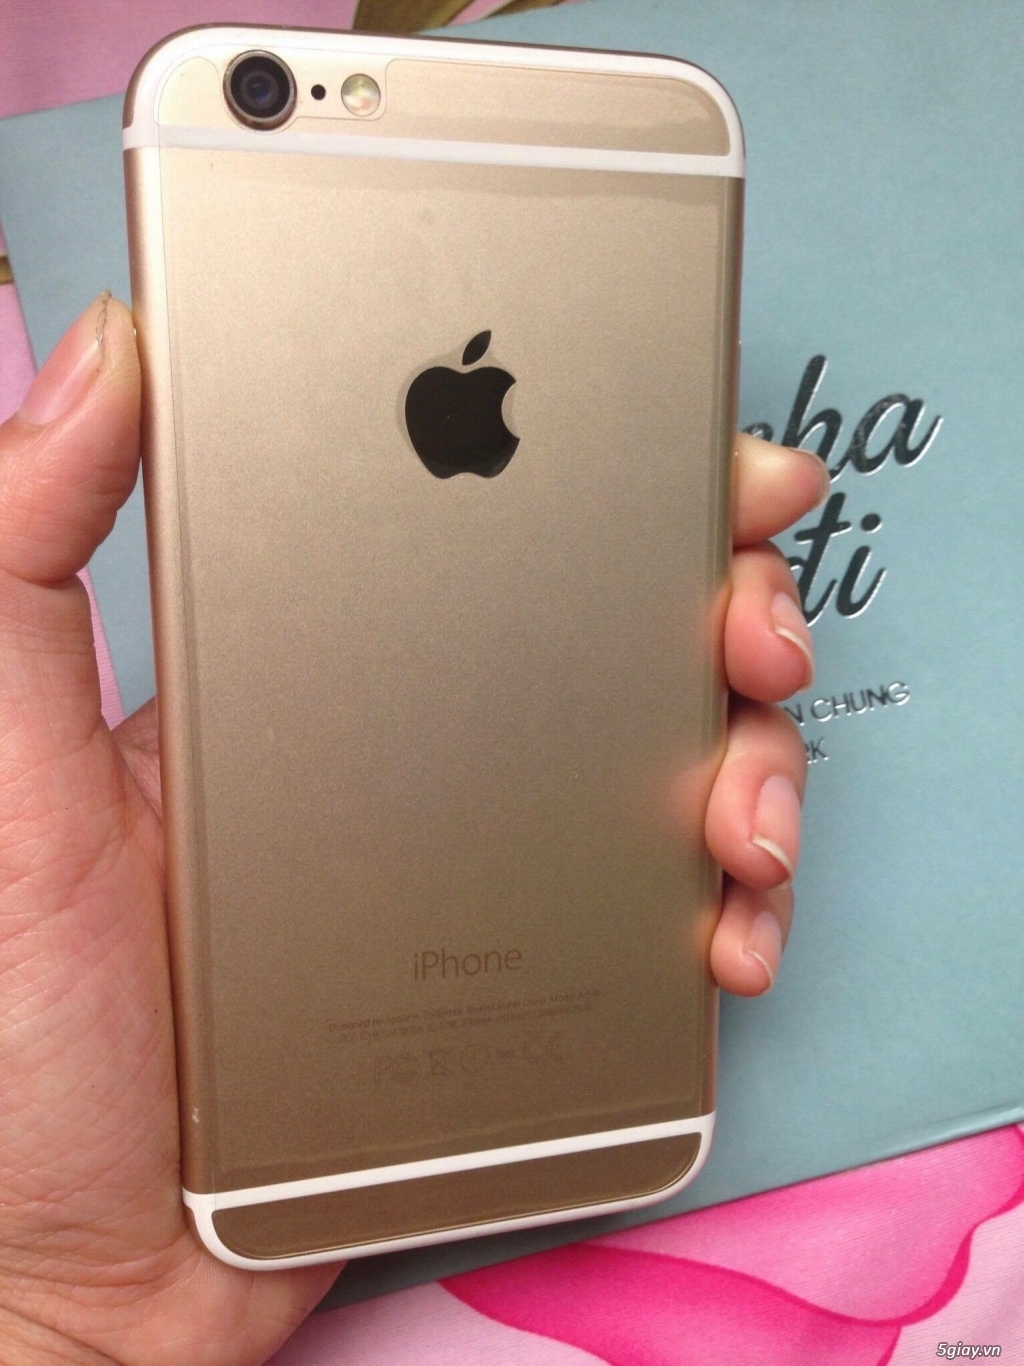 Iphone 6 Gold 16 gb, Lock Nhật - 3